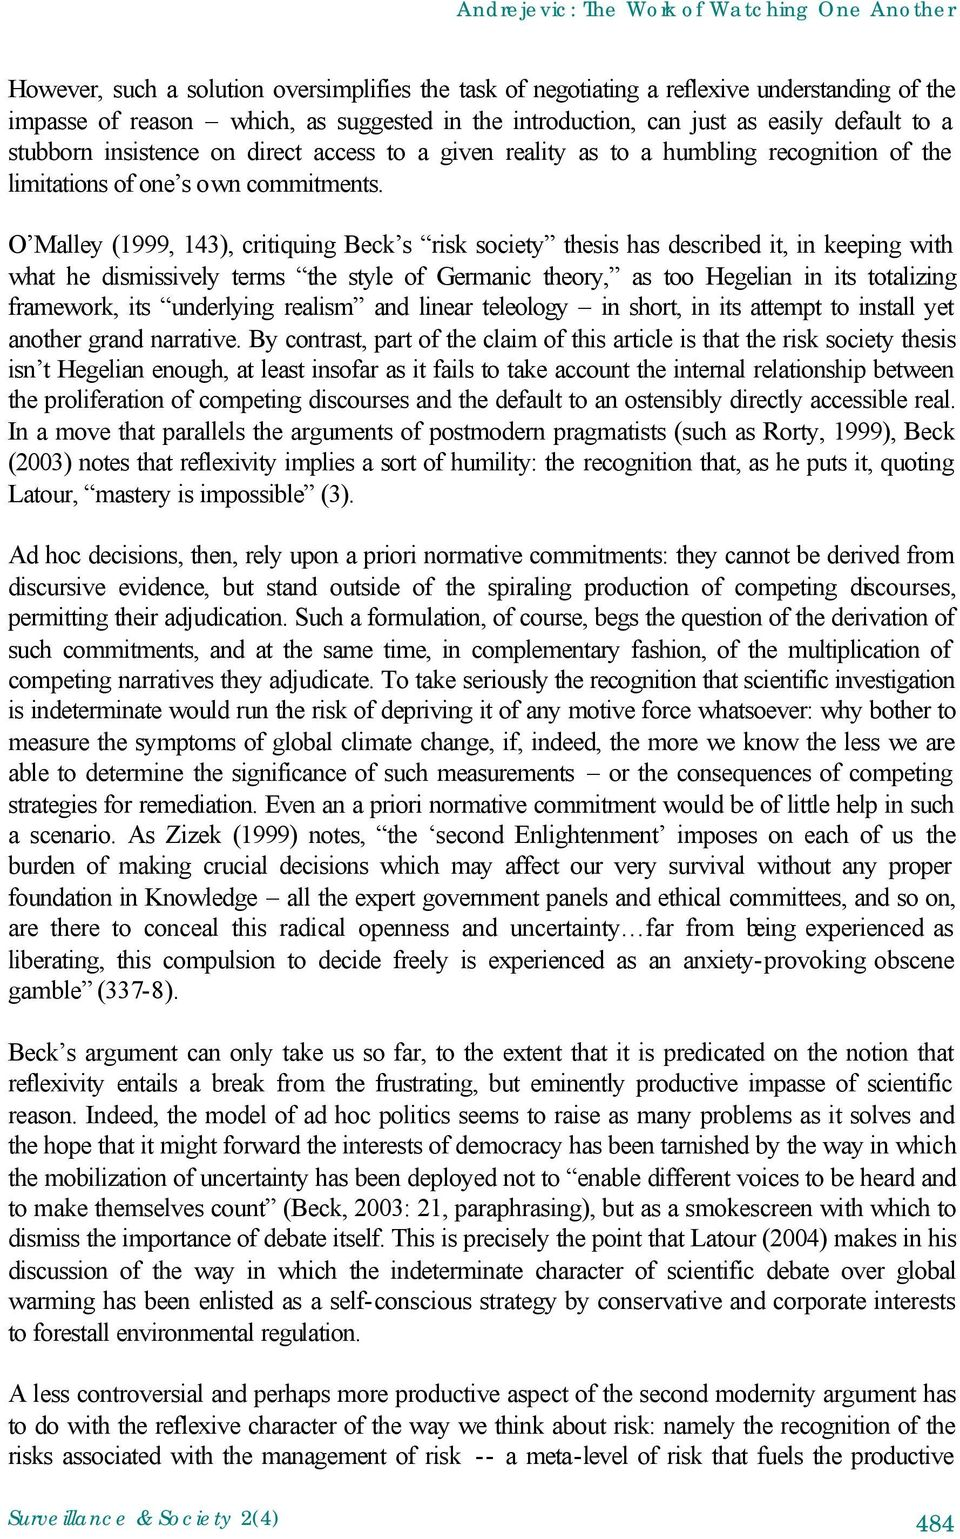 O Malley (1999, 143), critiquing Beck s risk society thesis has described it, in keeping with what he dismissively terms the style of Germanic theory, as too Hegelian in its totalizing framework, its